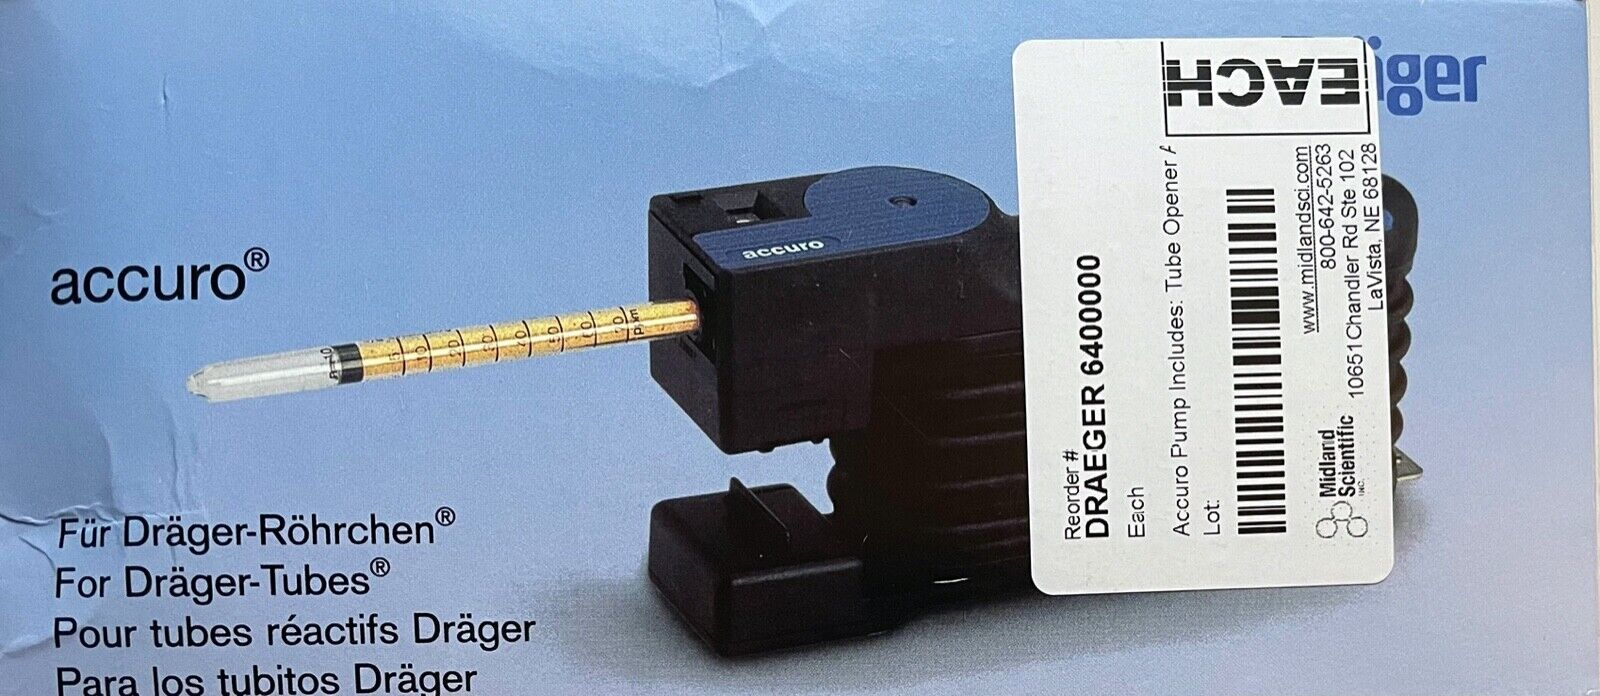 Draeger Accuro Pump 6400000 For Gas Detection Tubes Sampling